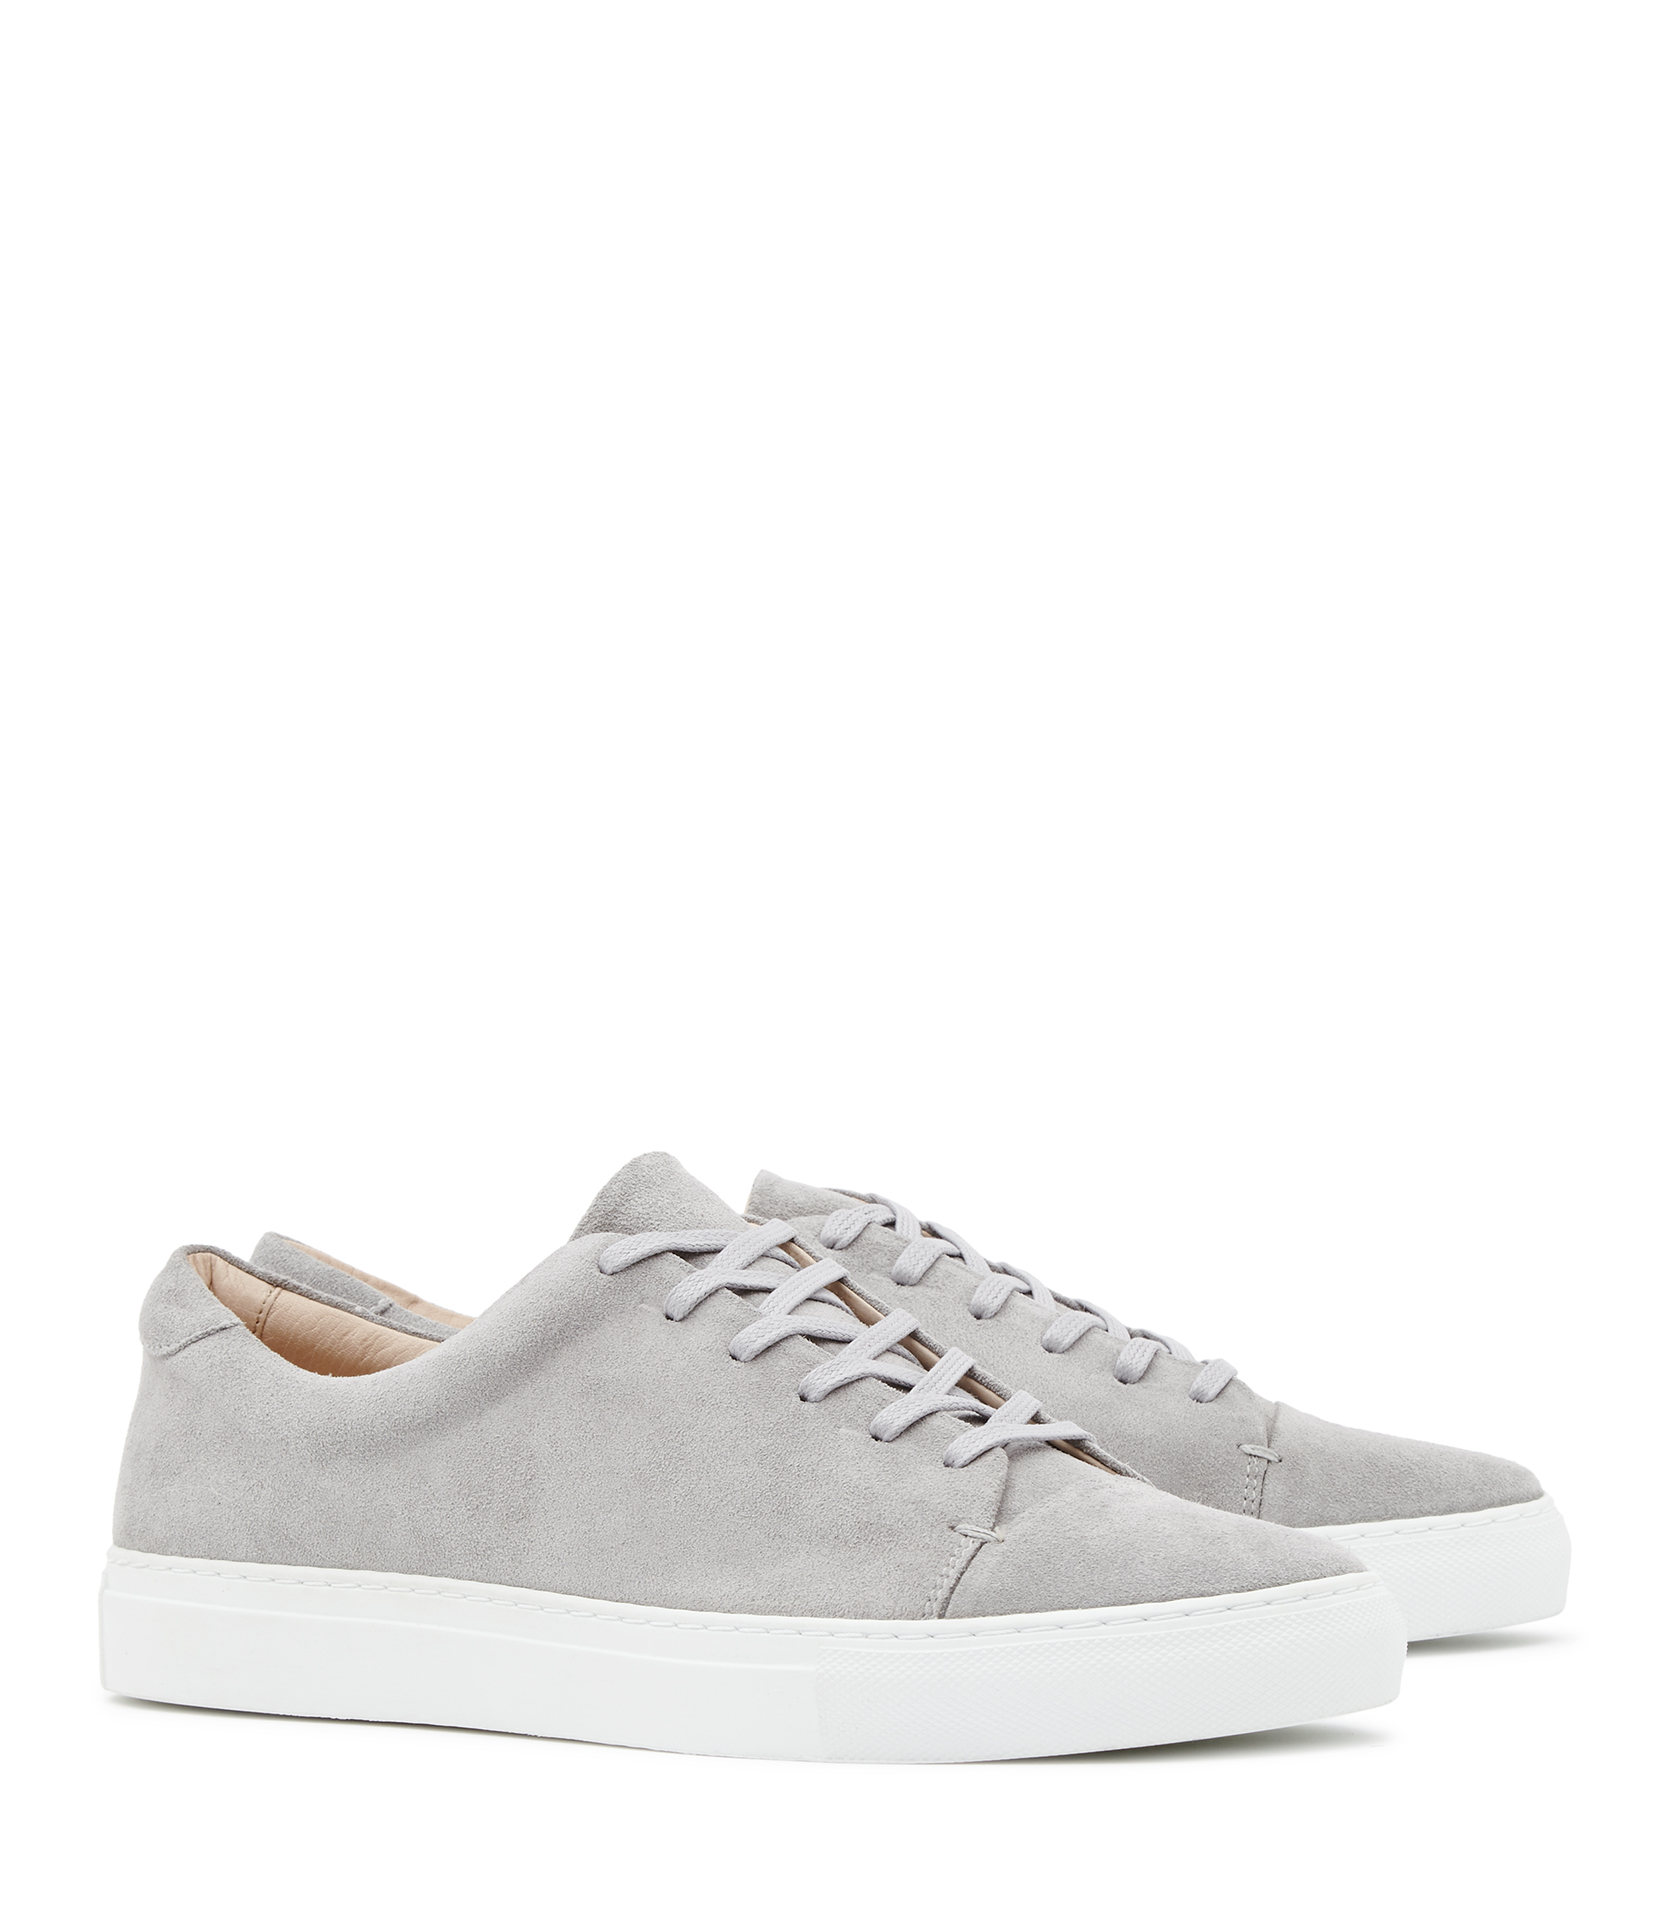 What Are The Top Eyelets For On Shoes